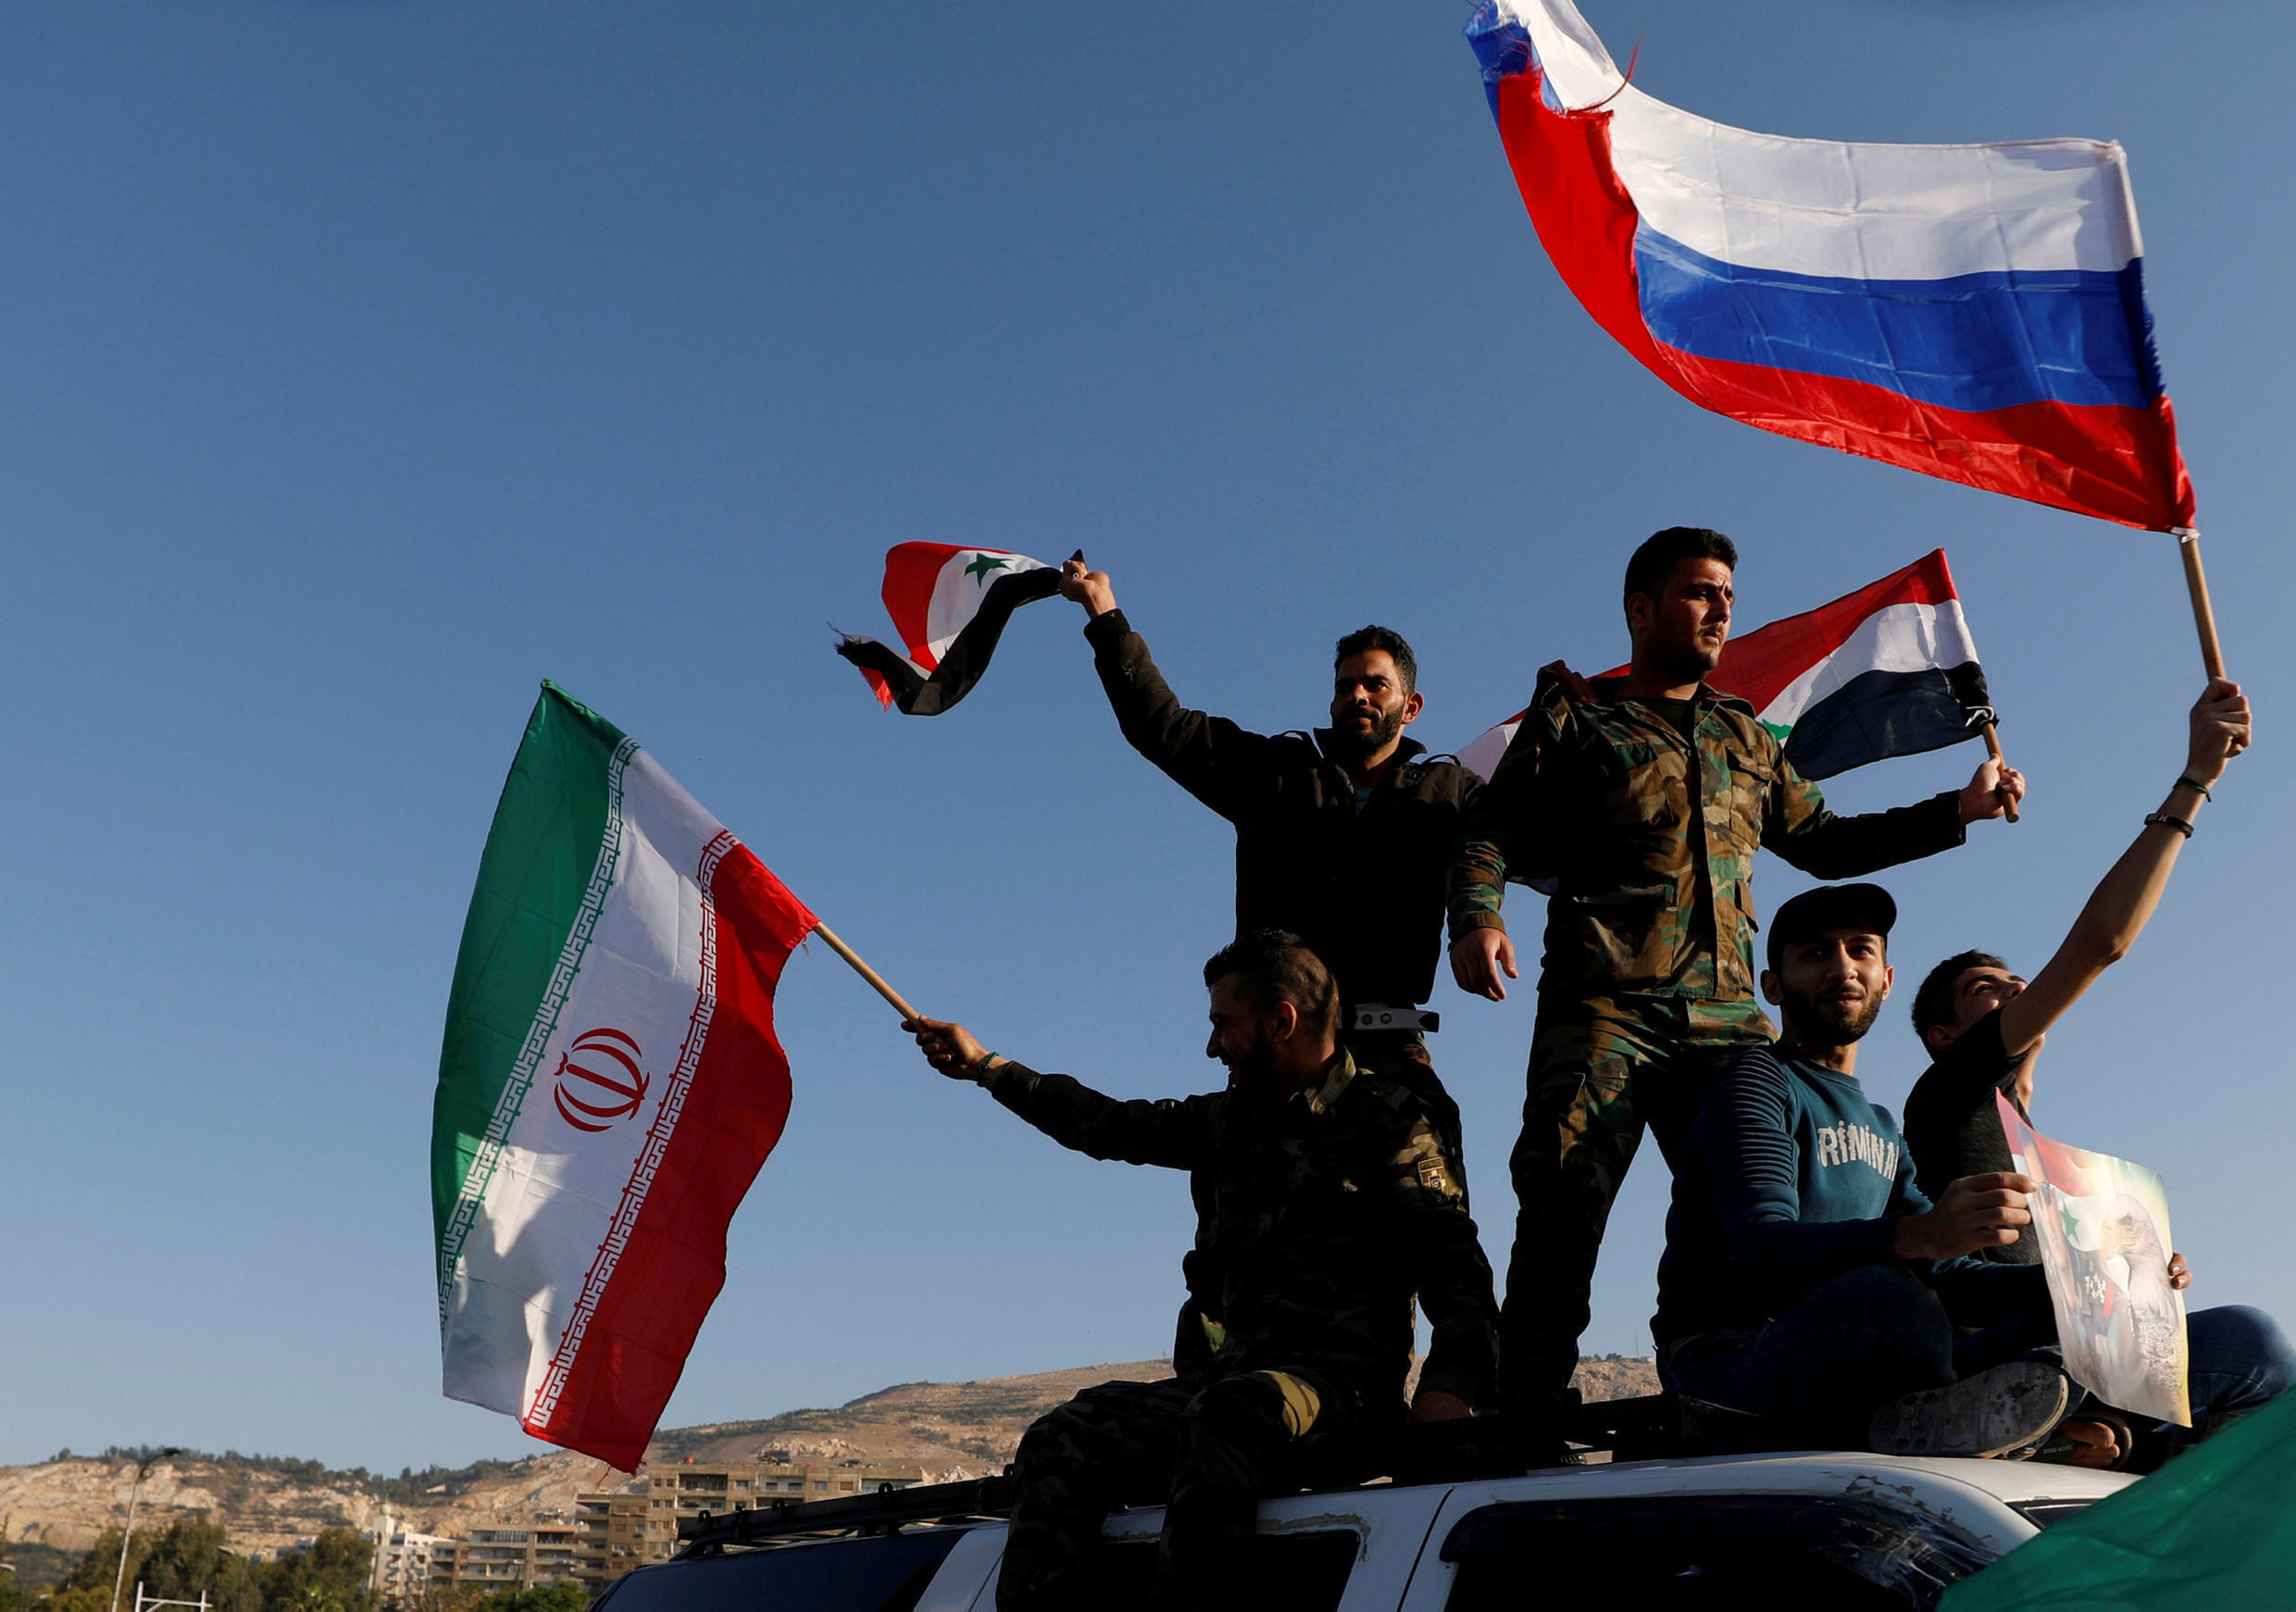 Syrians wave Iranian, Russian and Syrian flags in protest at the US-led air strikes in Damascus